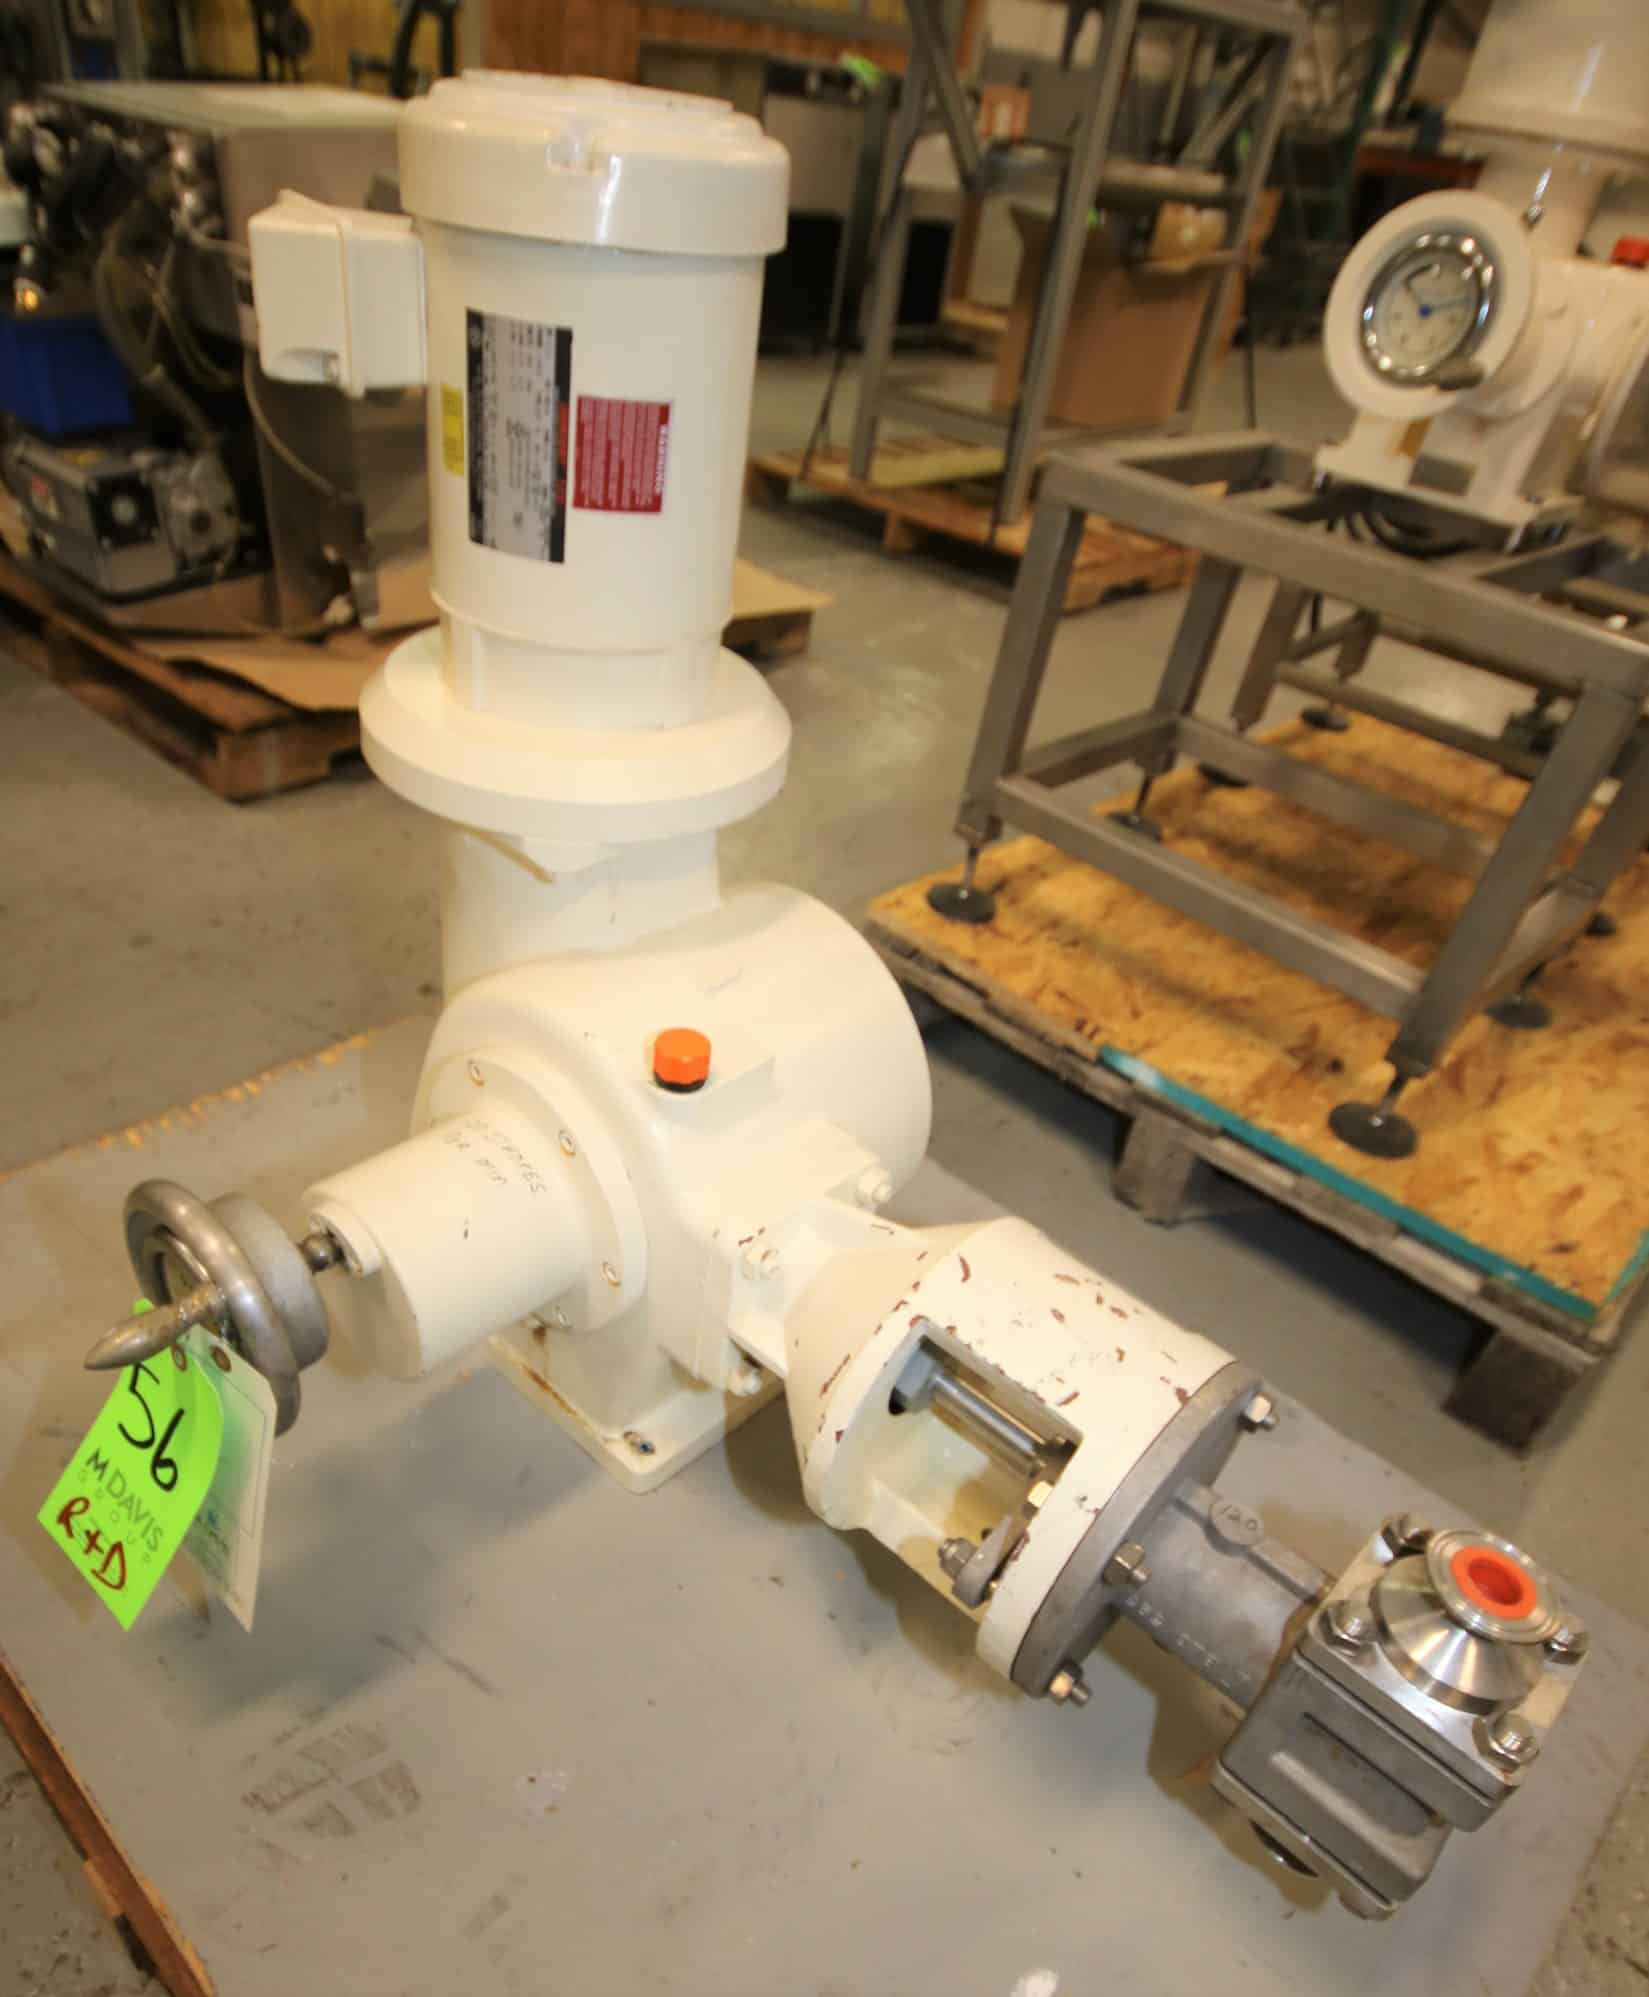 "Bran - Lubbe Metering Pump, Type N-D31, SN A9274, with 1.5"" Clamp Type Connections, US Motors 2 hp / 1725 rpm Drive Motor, 230/460V 3 Phase"